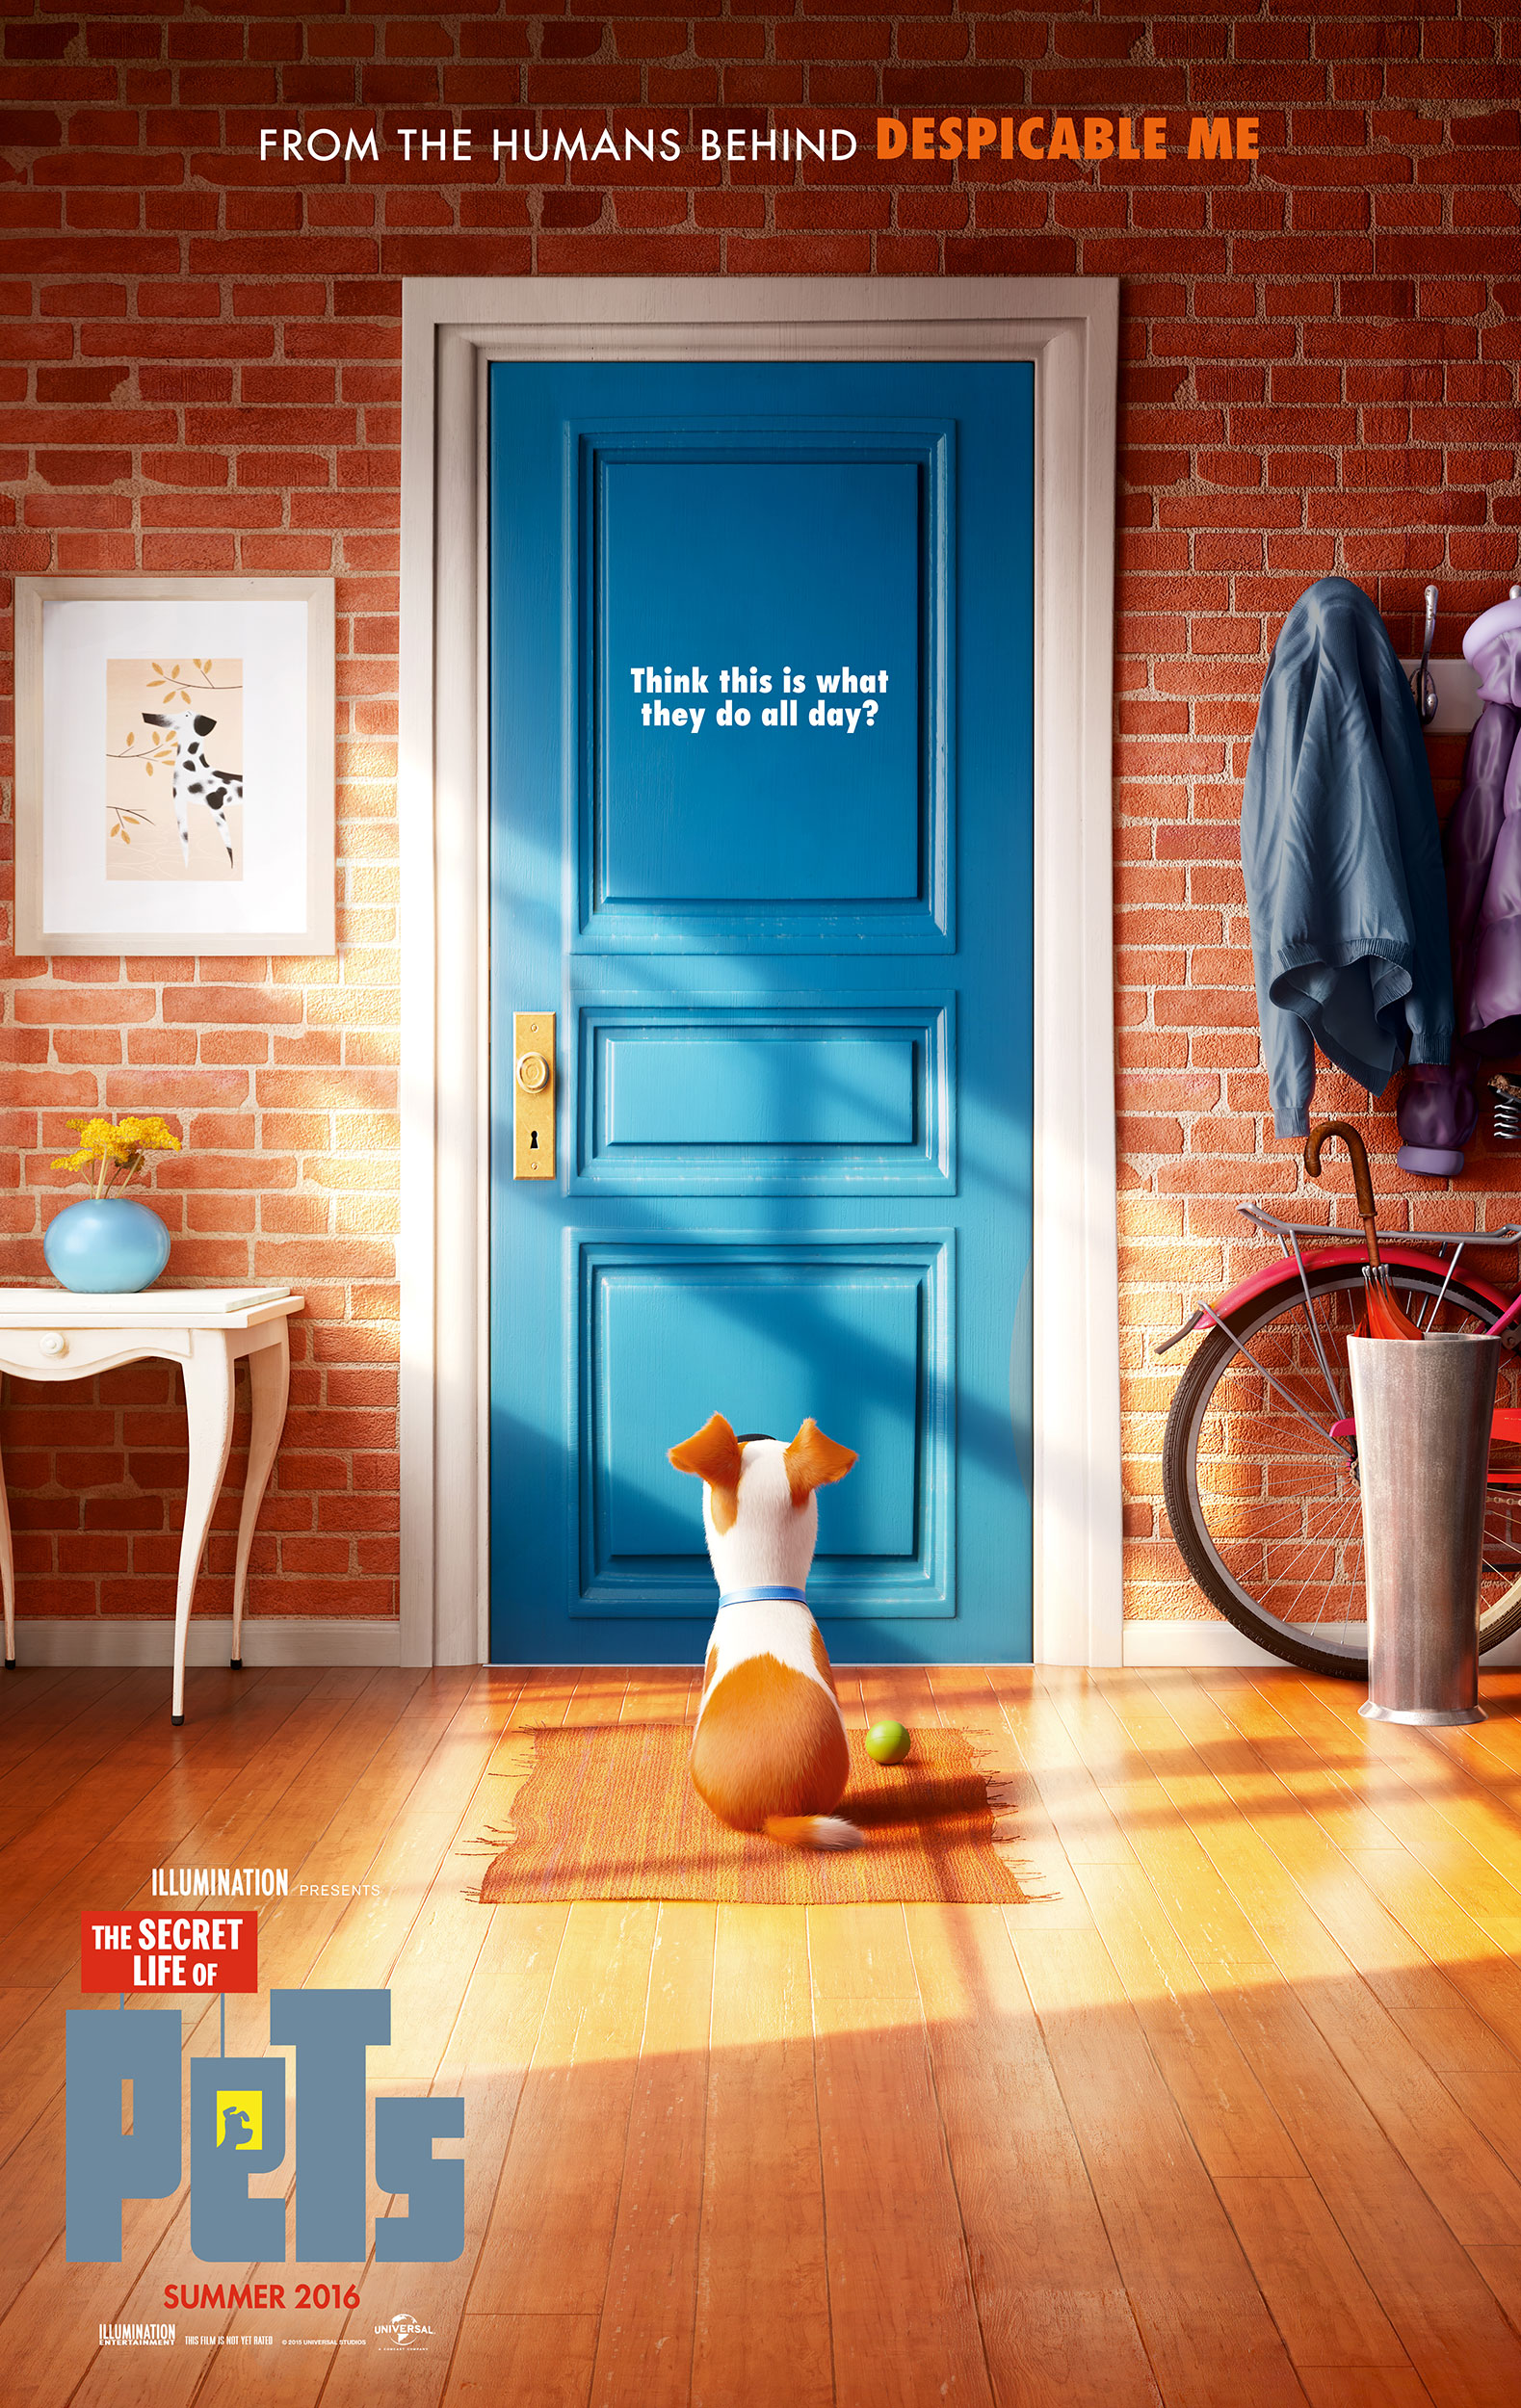 WIN a Family 4 Pack of Tickets to see The Secret Life Of Pets